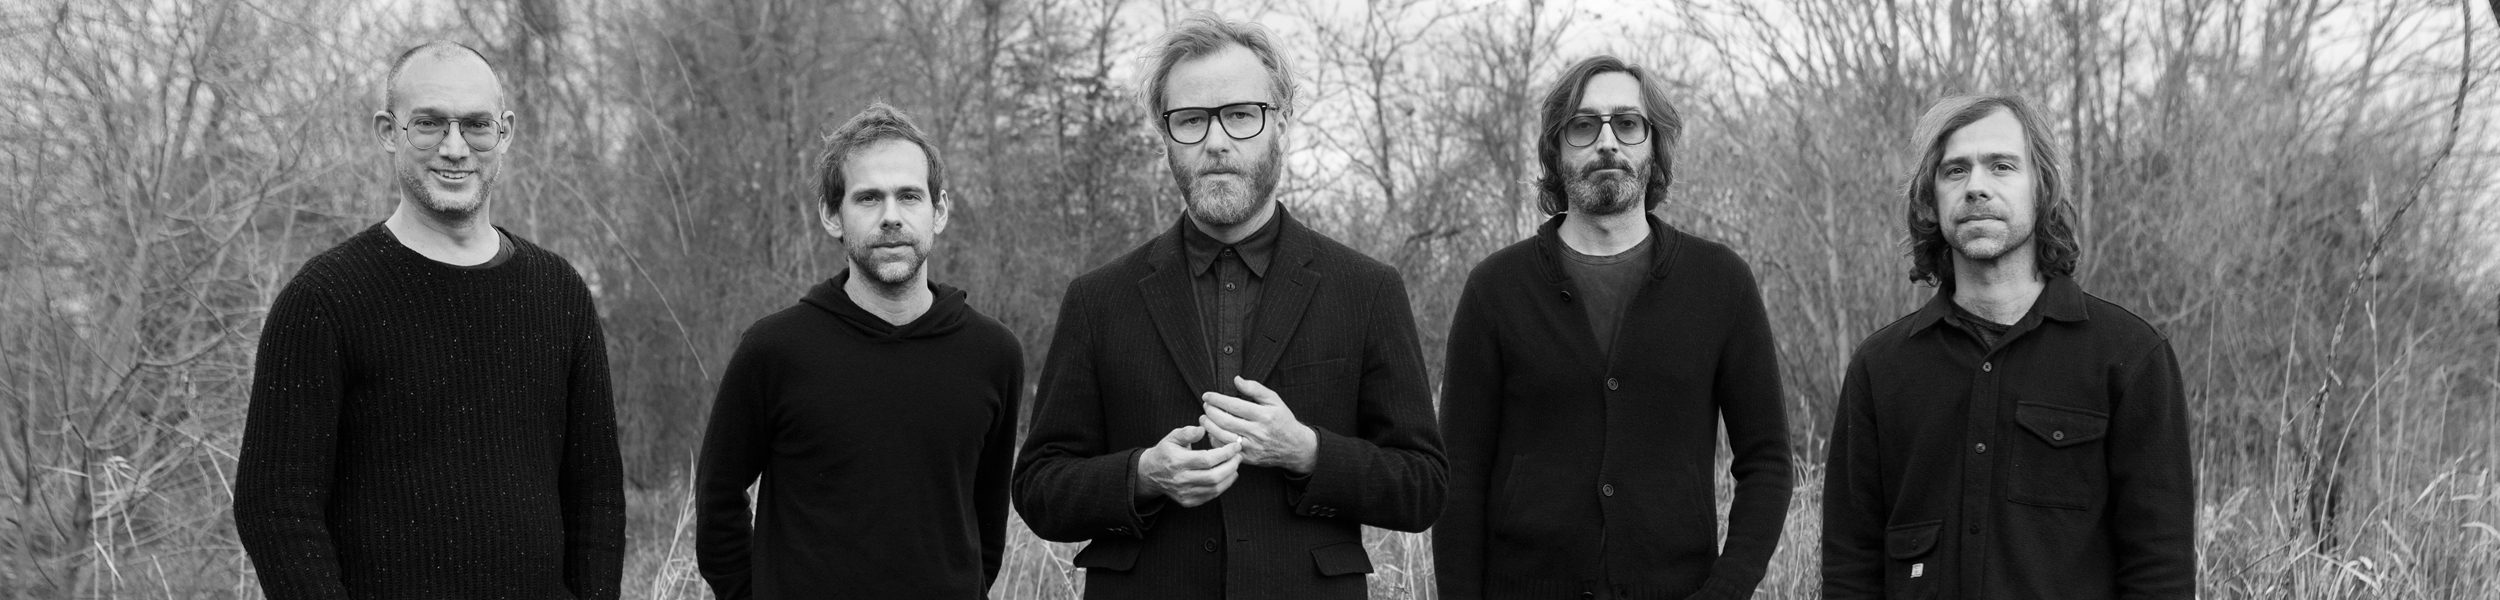 The National - 'I Need My Girl' Contest, North American Tour Dates